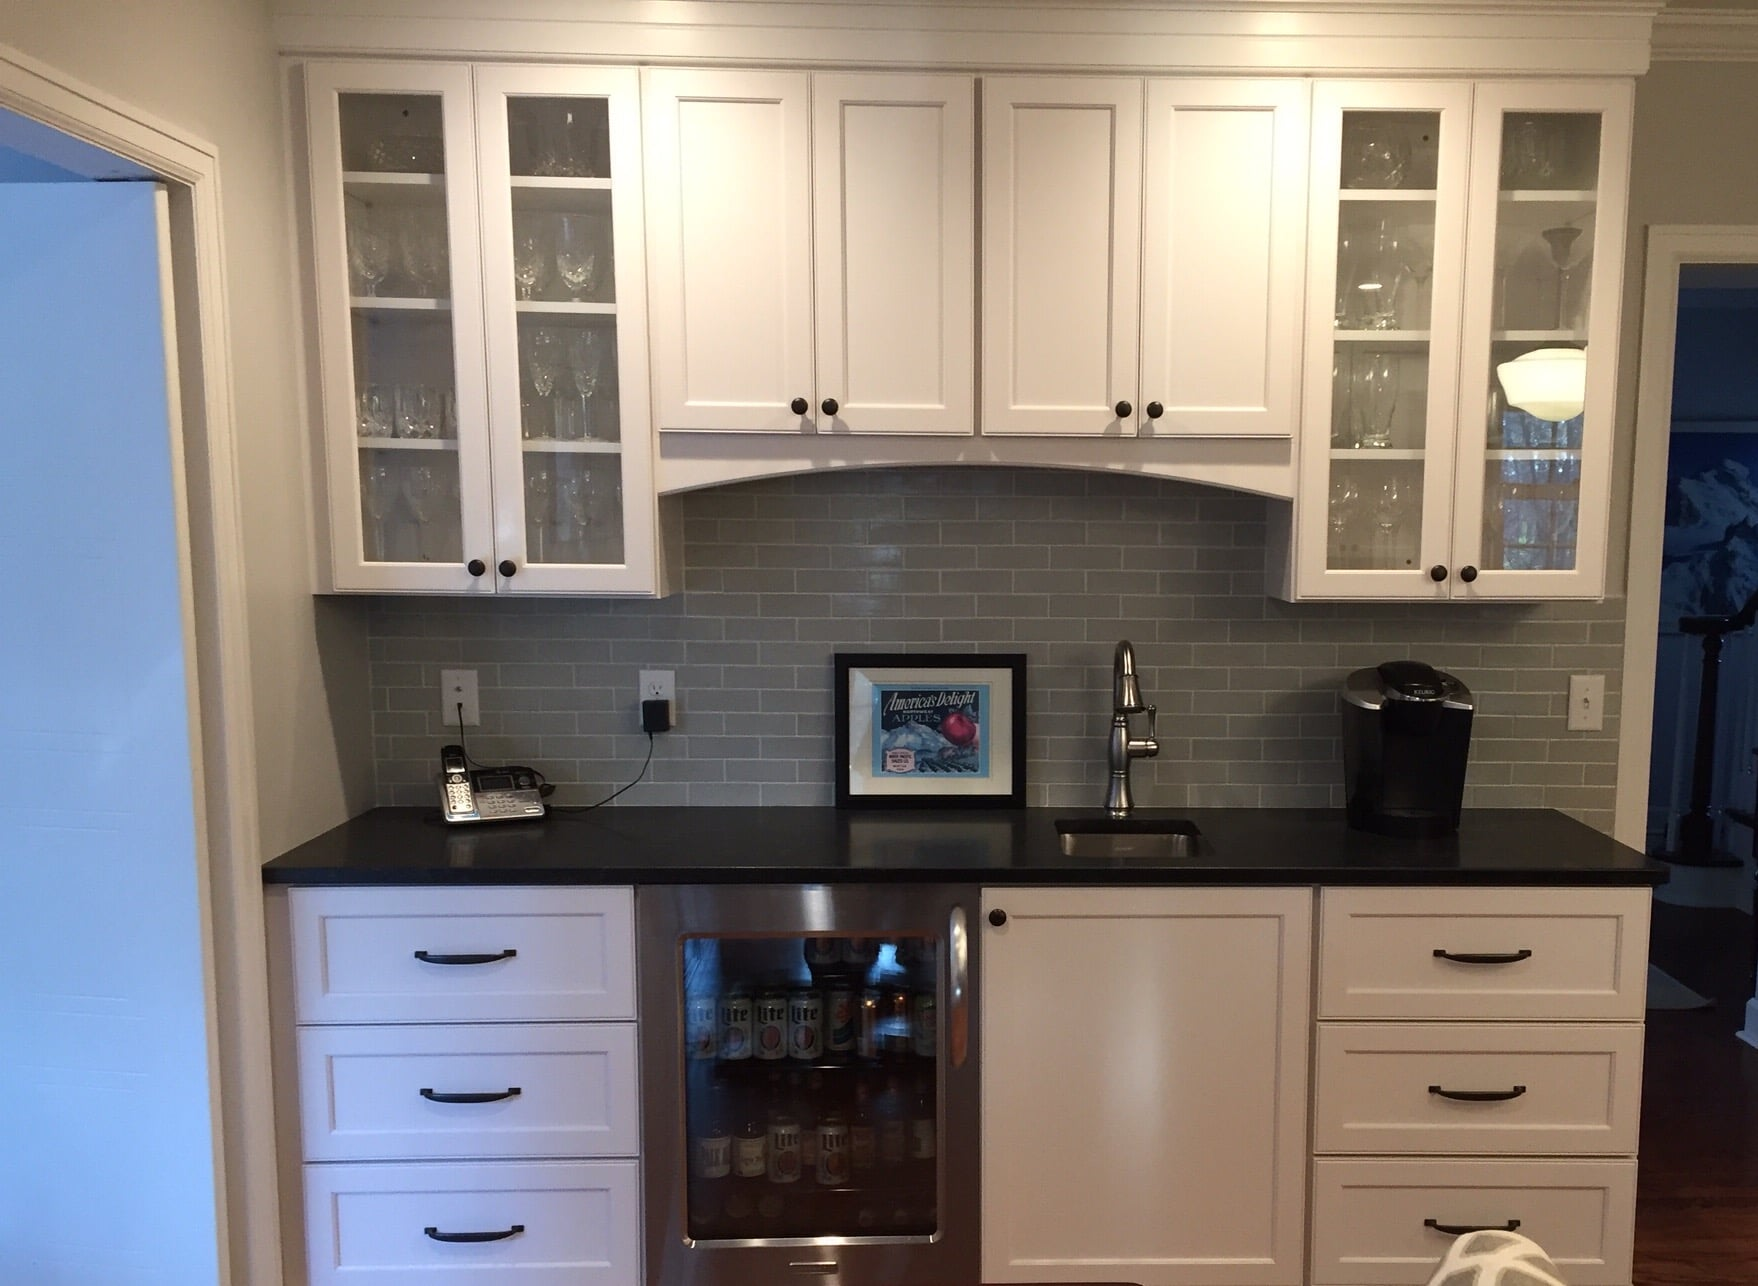 Kitchen remodel from Floorcrafters - Moline in East Moline, IL